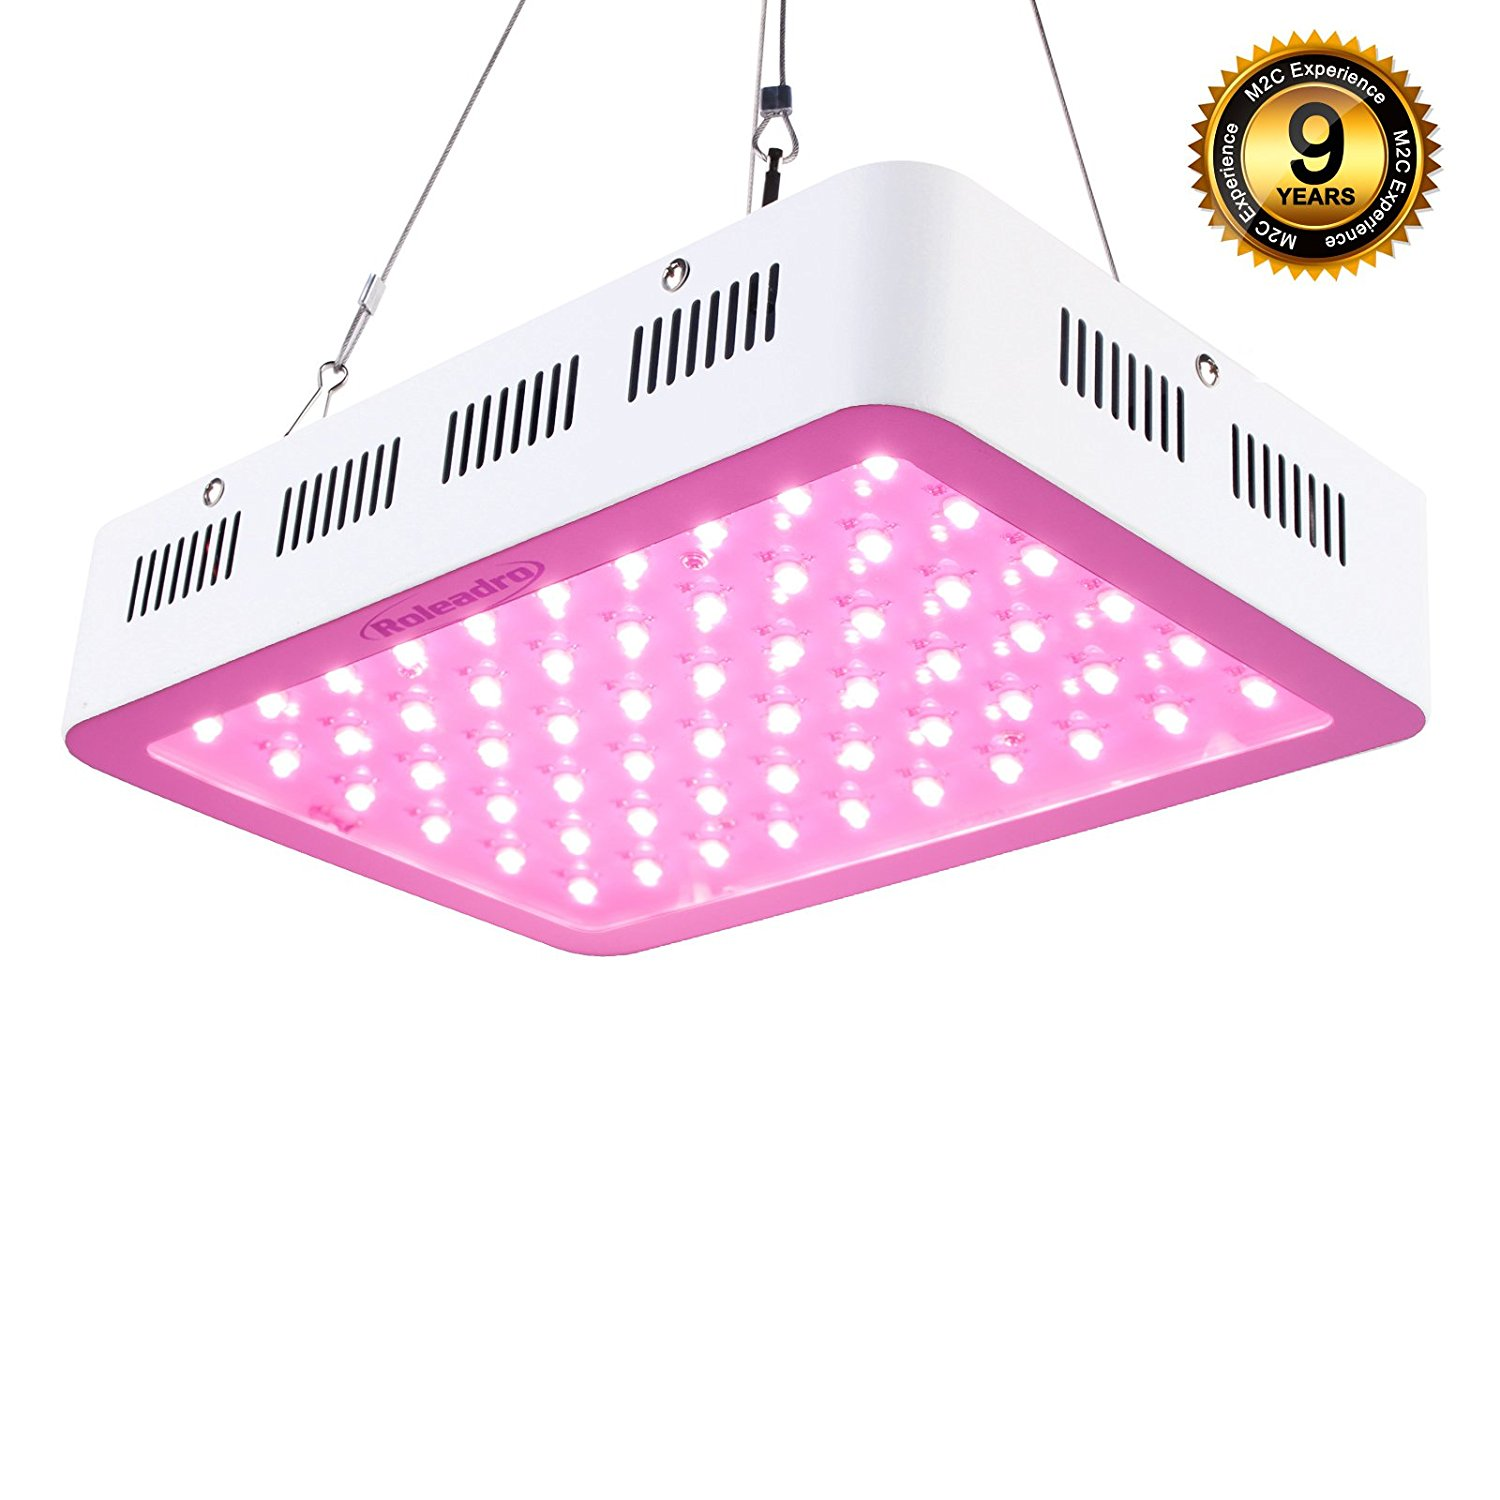 9. Roleadro 300W LED Grow Light